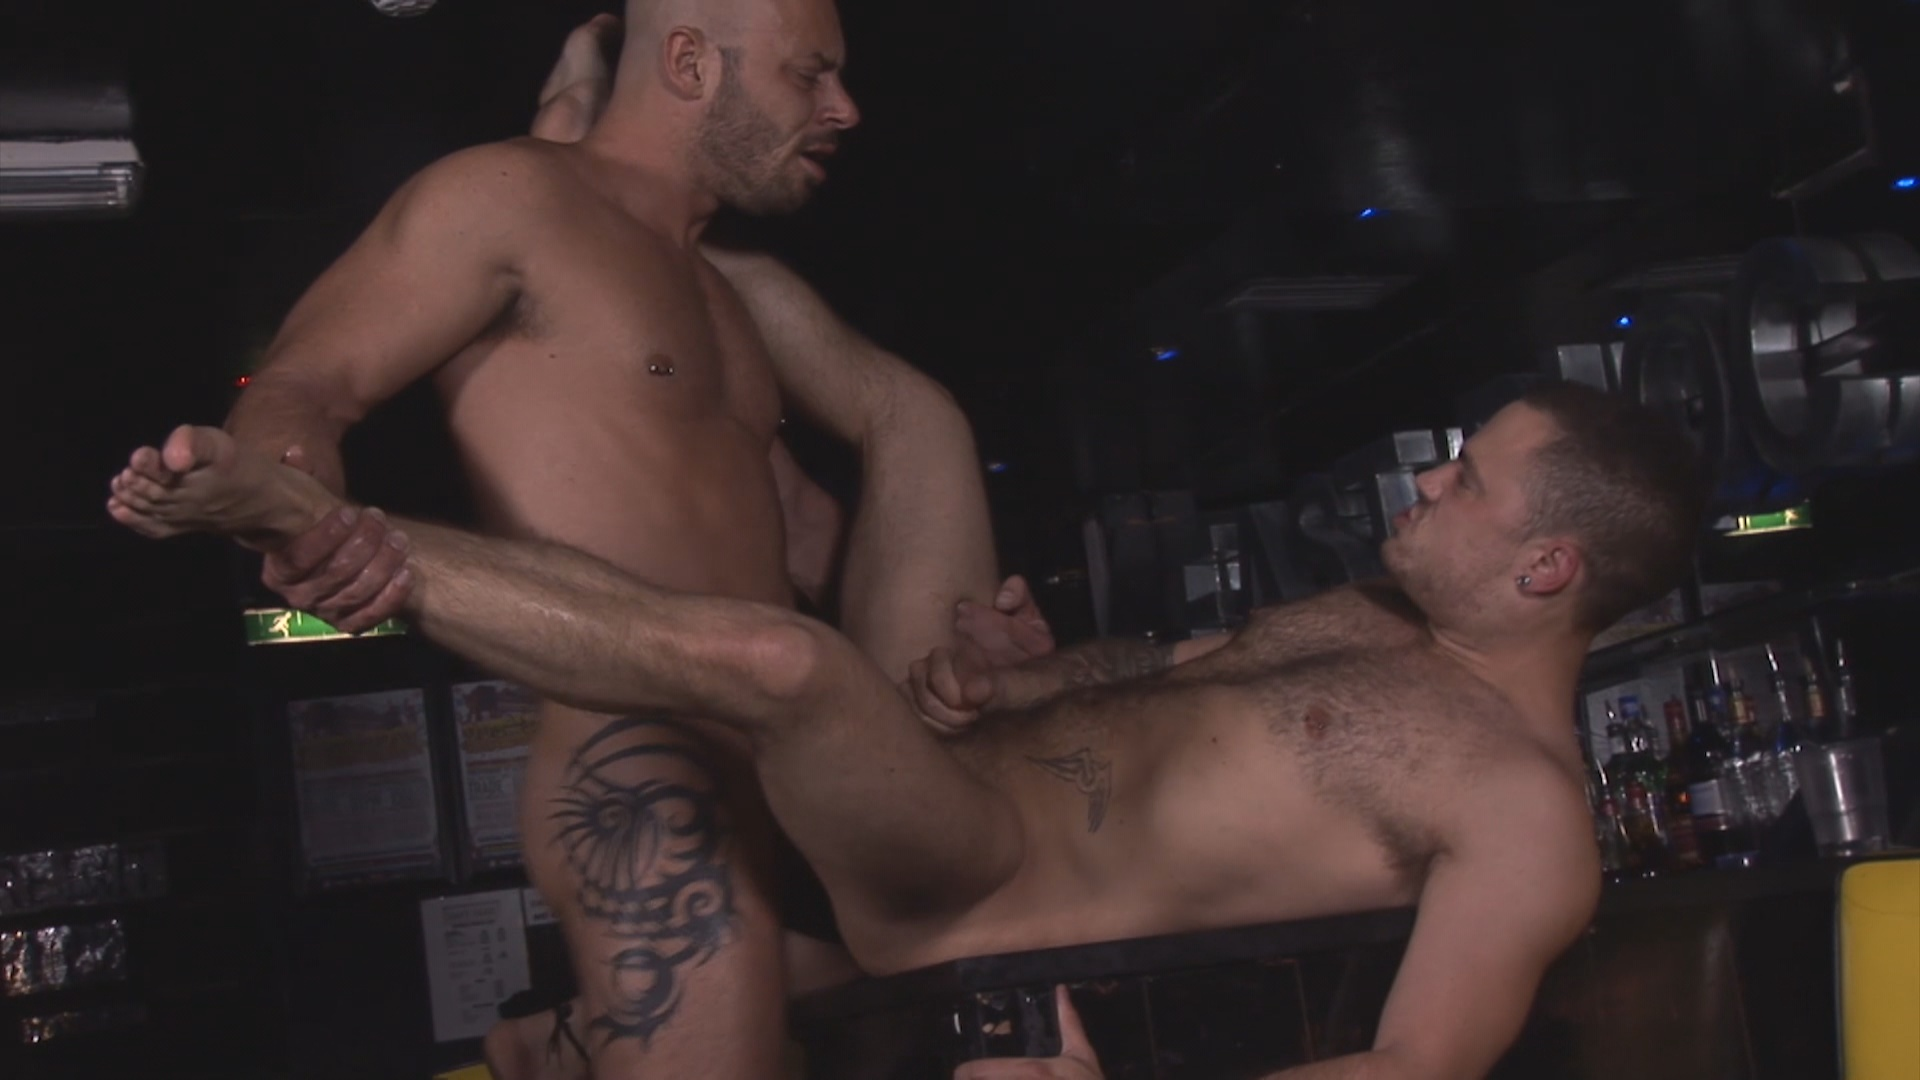 Enforcement Xvideo gay